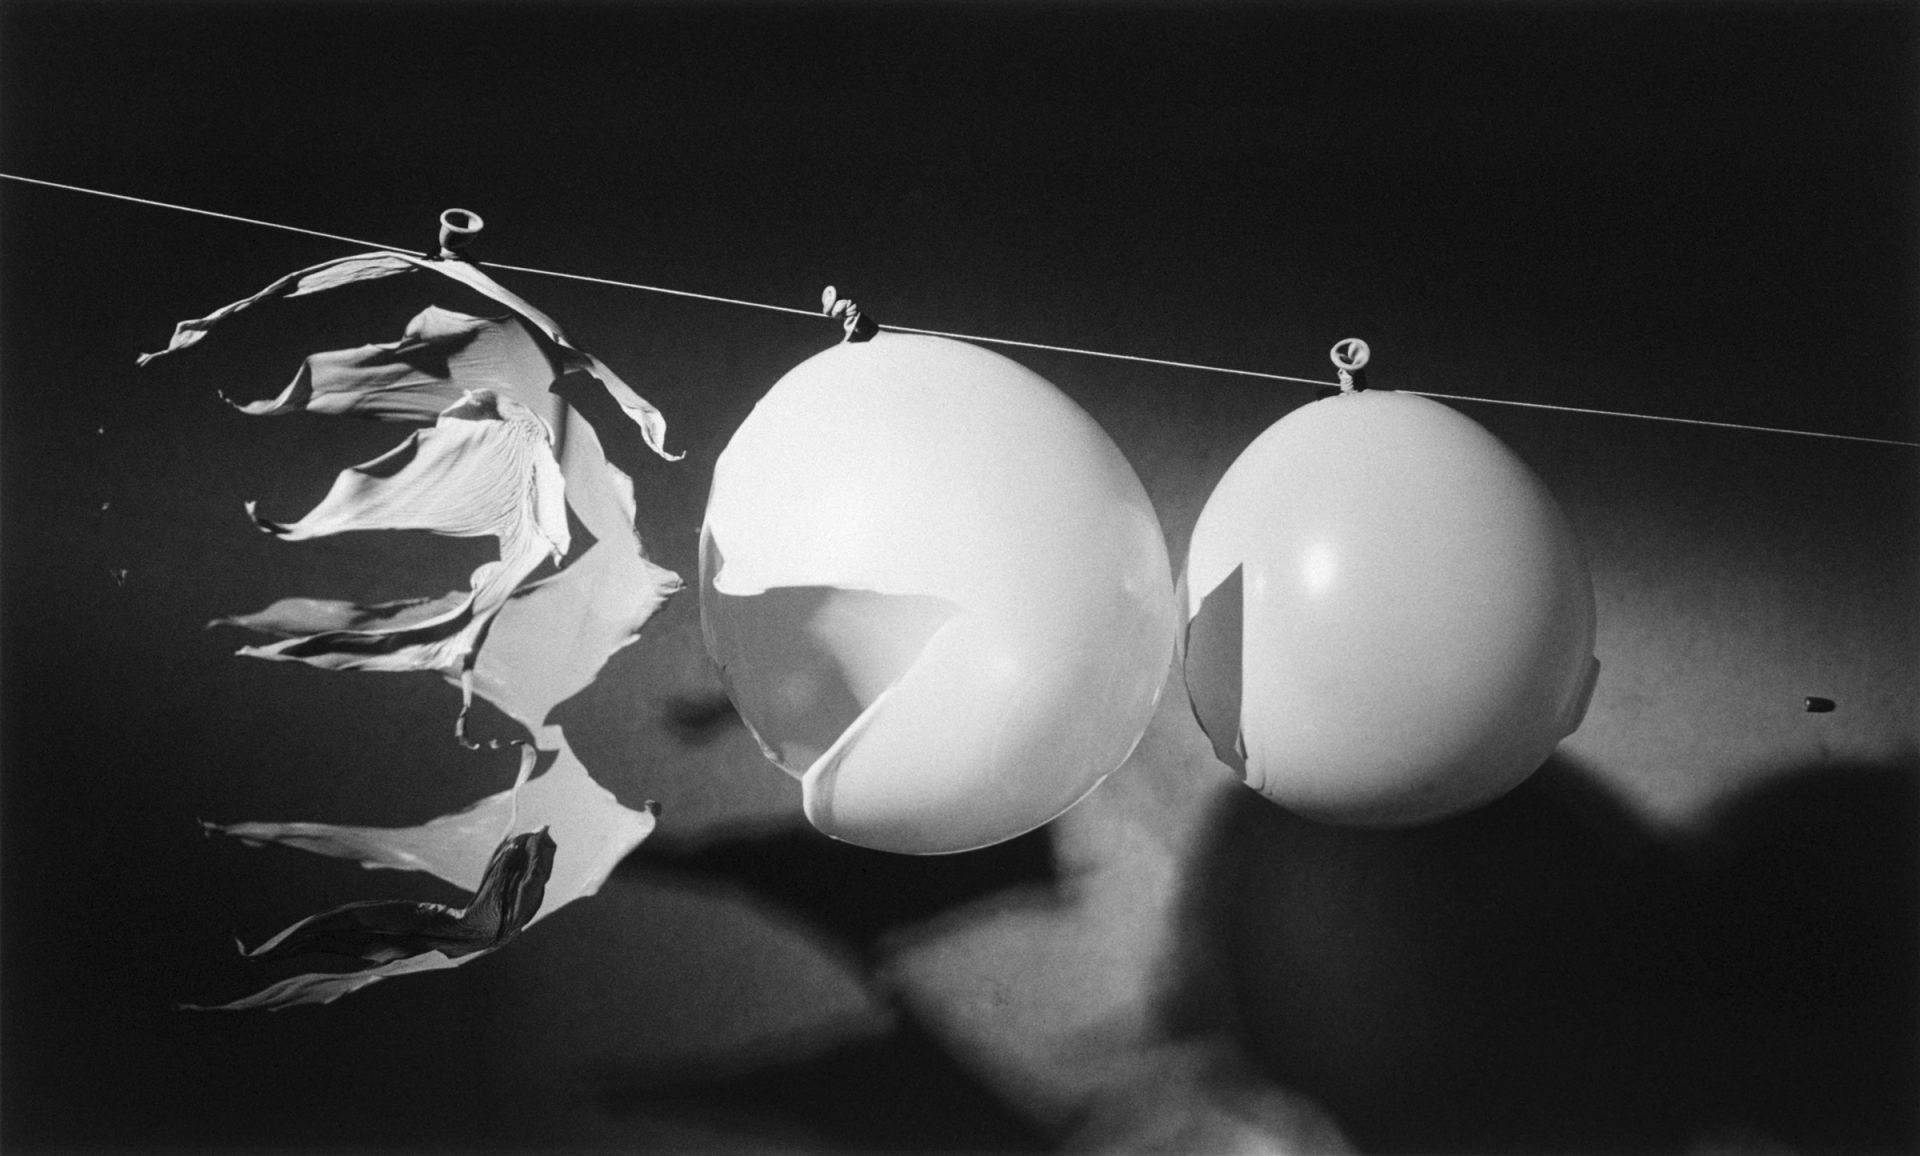 "<i>Bullet Through Three Balloons,</i> 1959<br> gelatin silver print<br> 13 x 17 inches<br> In one single picture, we see three consecutive stages of the bursting of balloons by a .22 caliber bullet. The sound from the rifle firing was picked up with a microphone, which ultimately triggered the microflash at less than one millionth of a second duration. Only the strobe and Edgerton's insatiable interest could reveal this almost instantaneous succession of events as clearly and totally different stages. The wonderful insight this picture provides is the result of Edgerton's keen eye and his knack for presenting phenomena as interesting and full of clues. The halls of Strobe Alley were often full of similar pictures accompanied by comments such as, ""What's Happening Here?"""